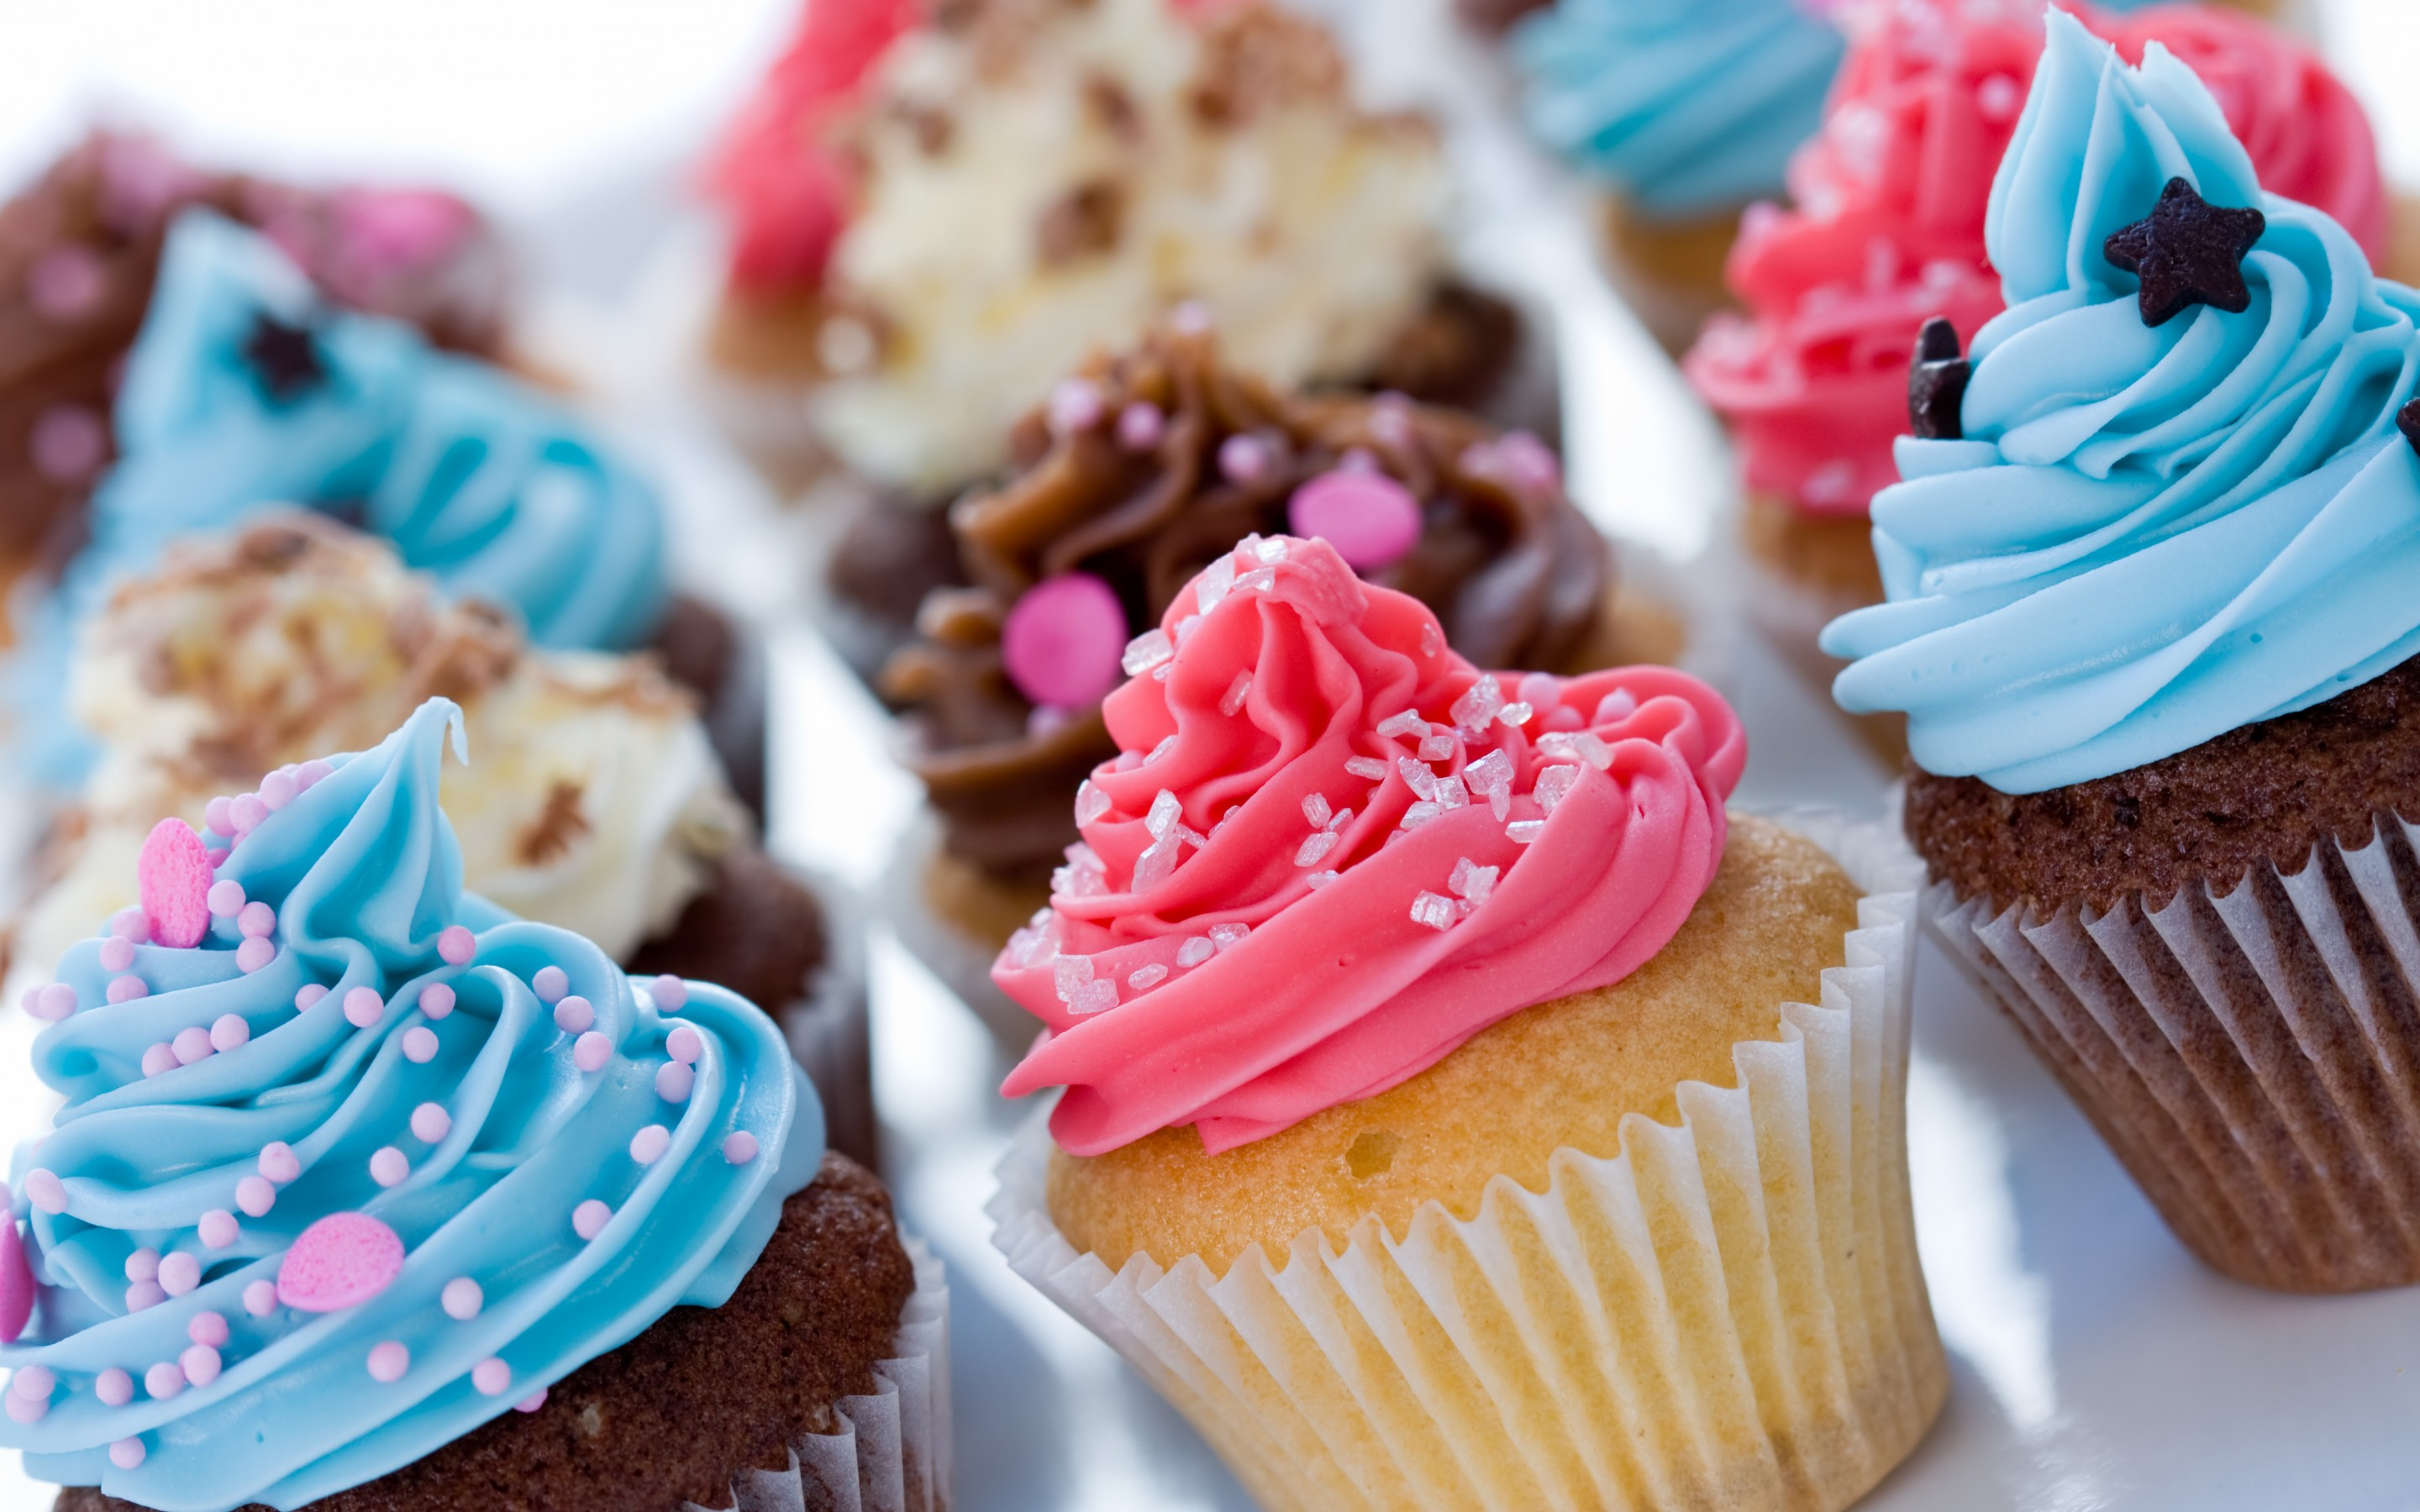 216 cupcake hd wallpapers | background images - wallpaper abyss